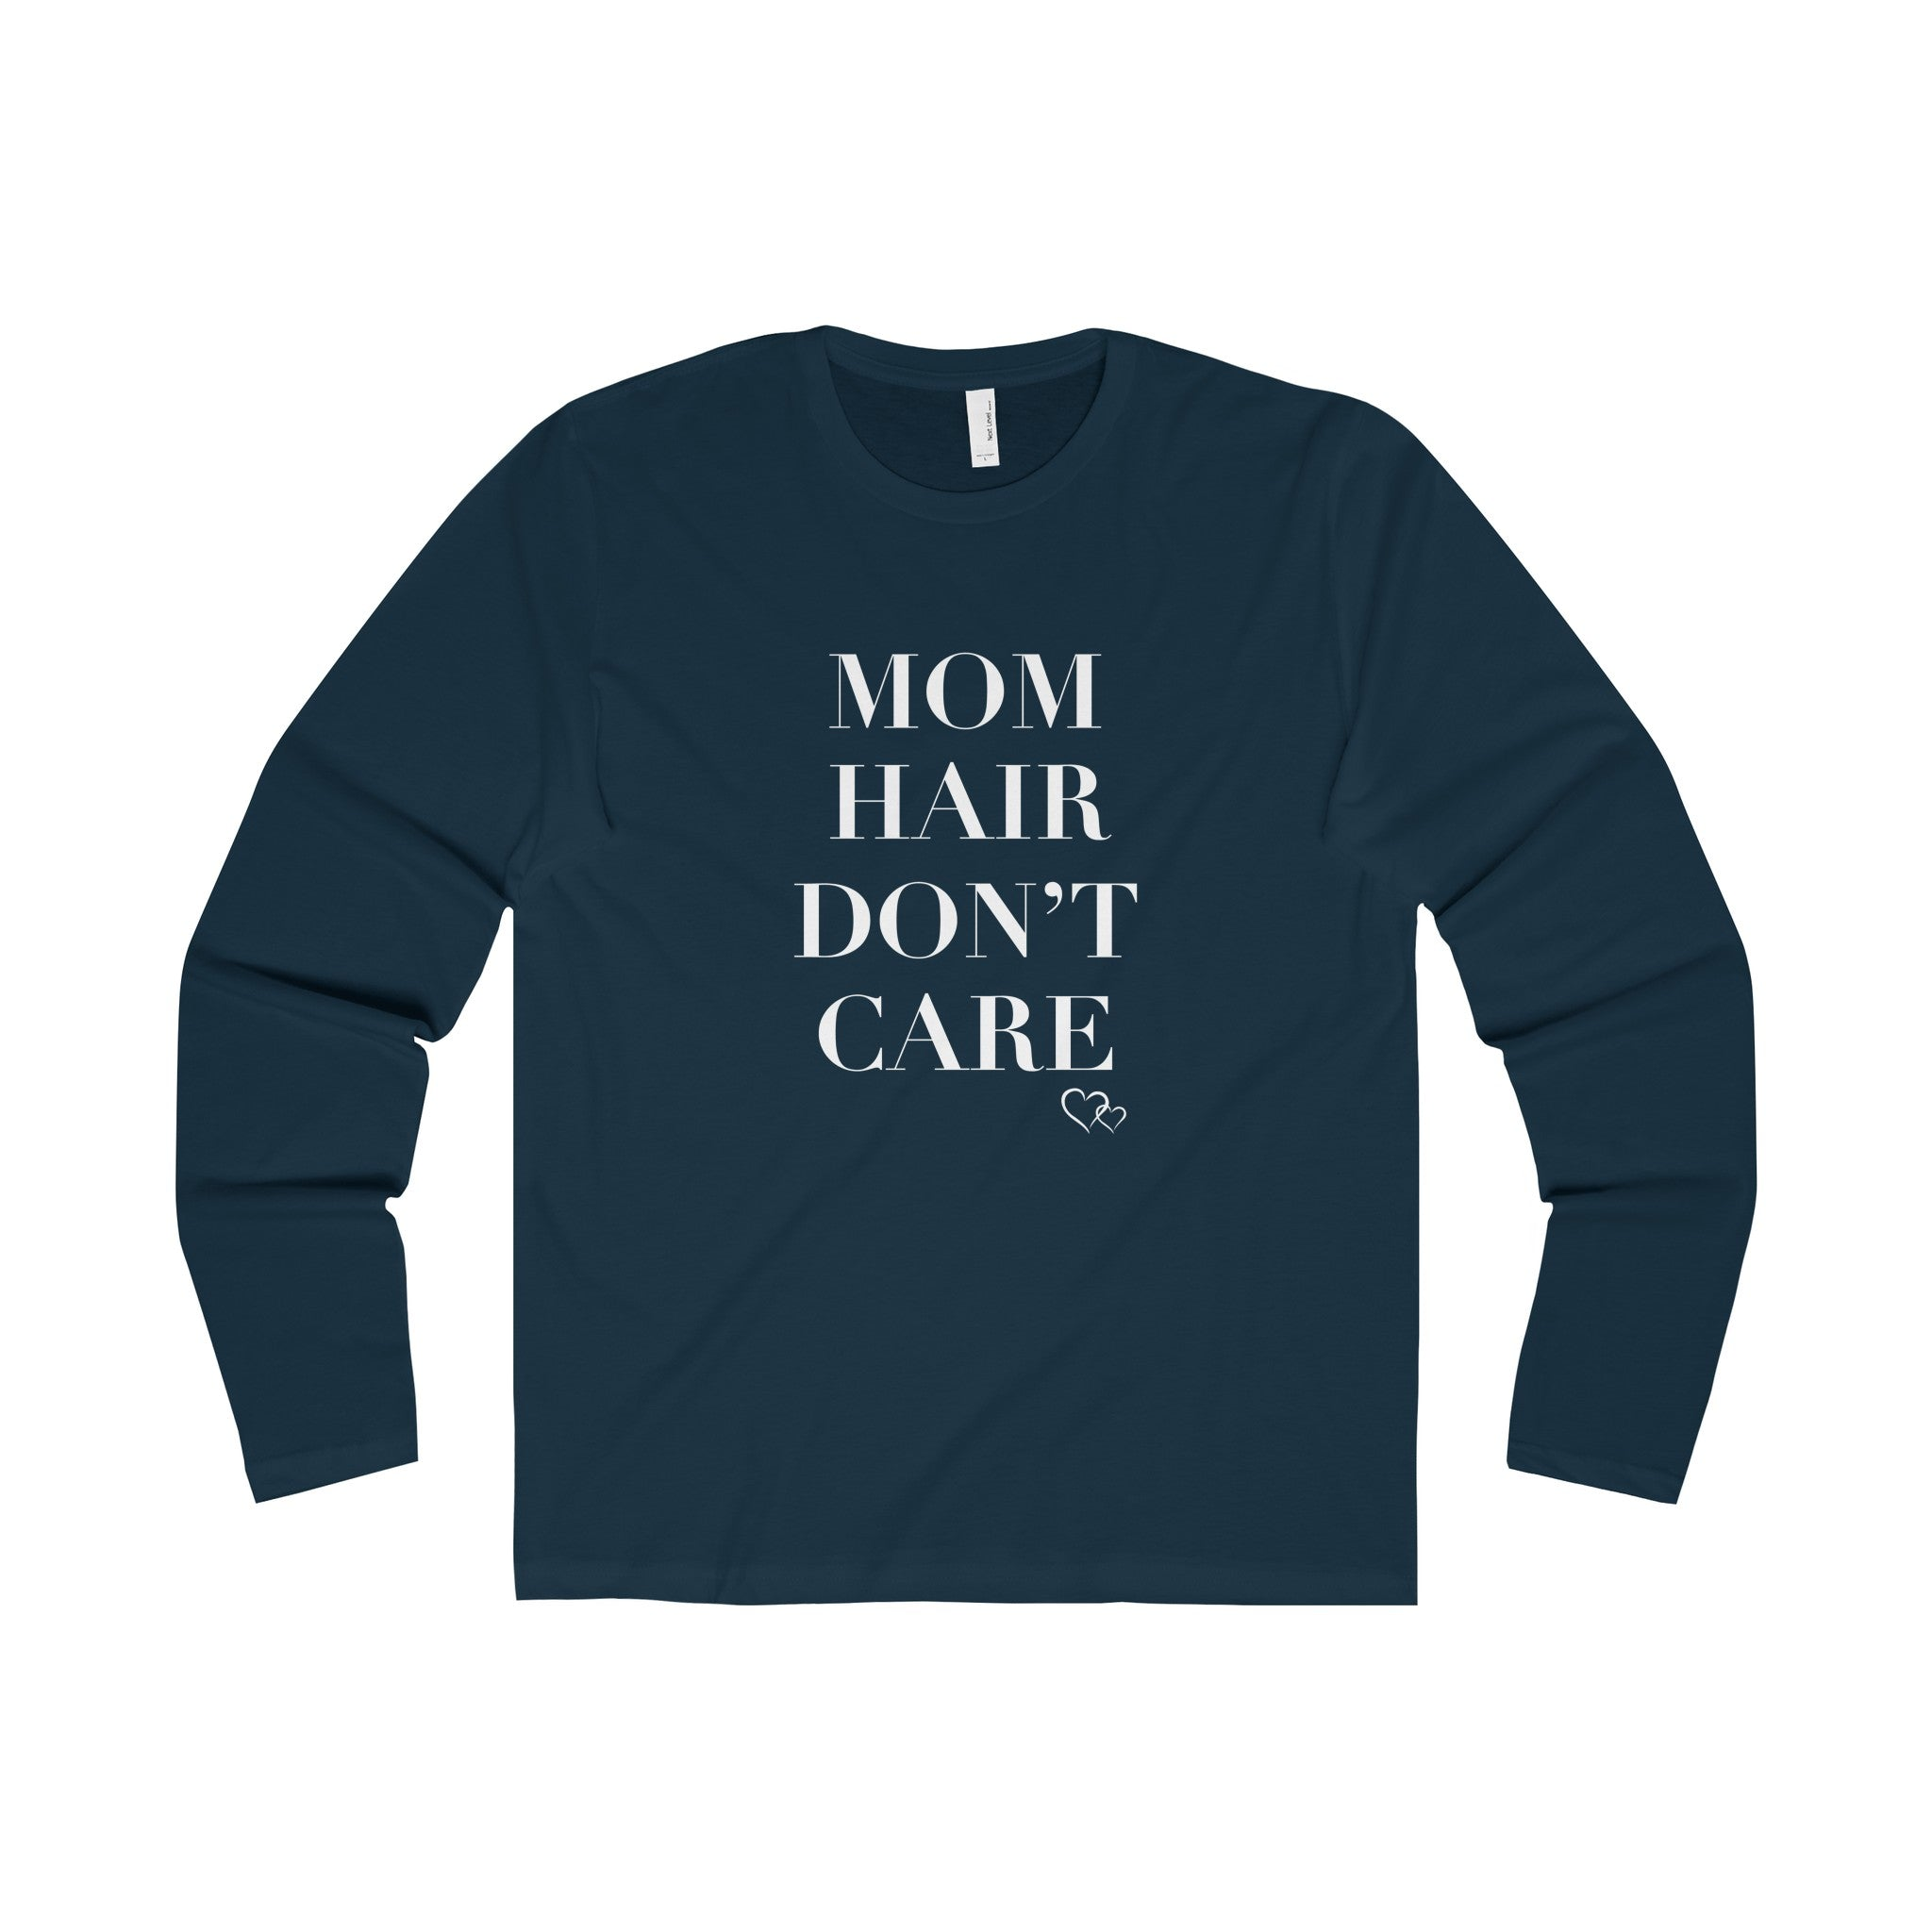 MOM HAIR DON'T CARE - Long Sleeve (Unisex)